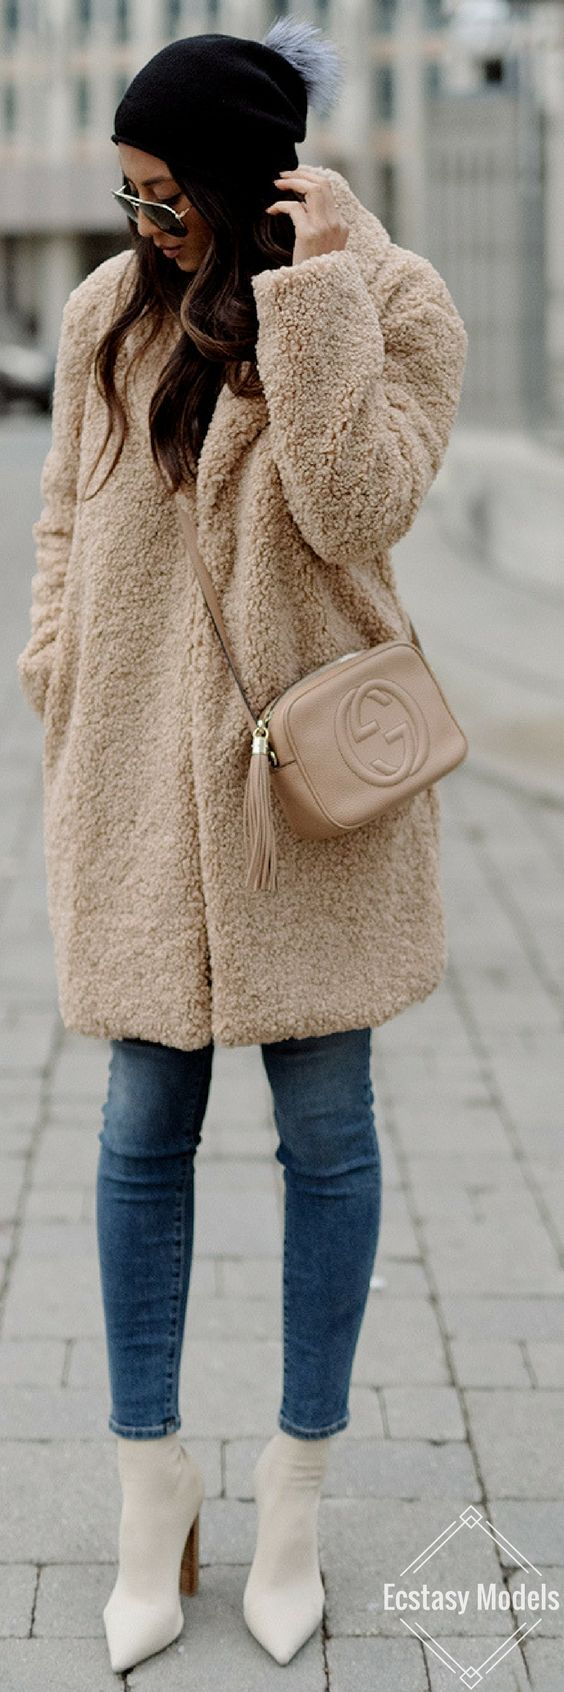 The Teddy Coat // Fashion Look by Not Your Standard: